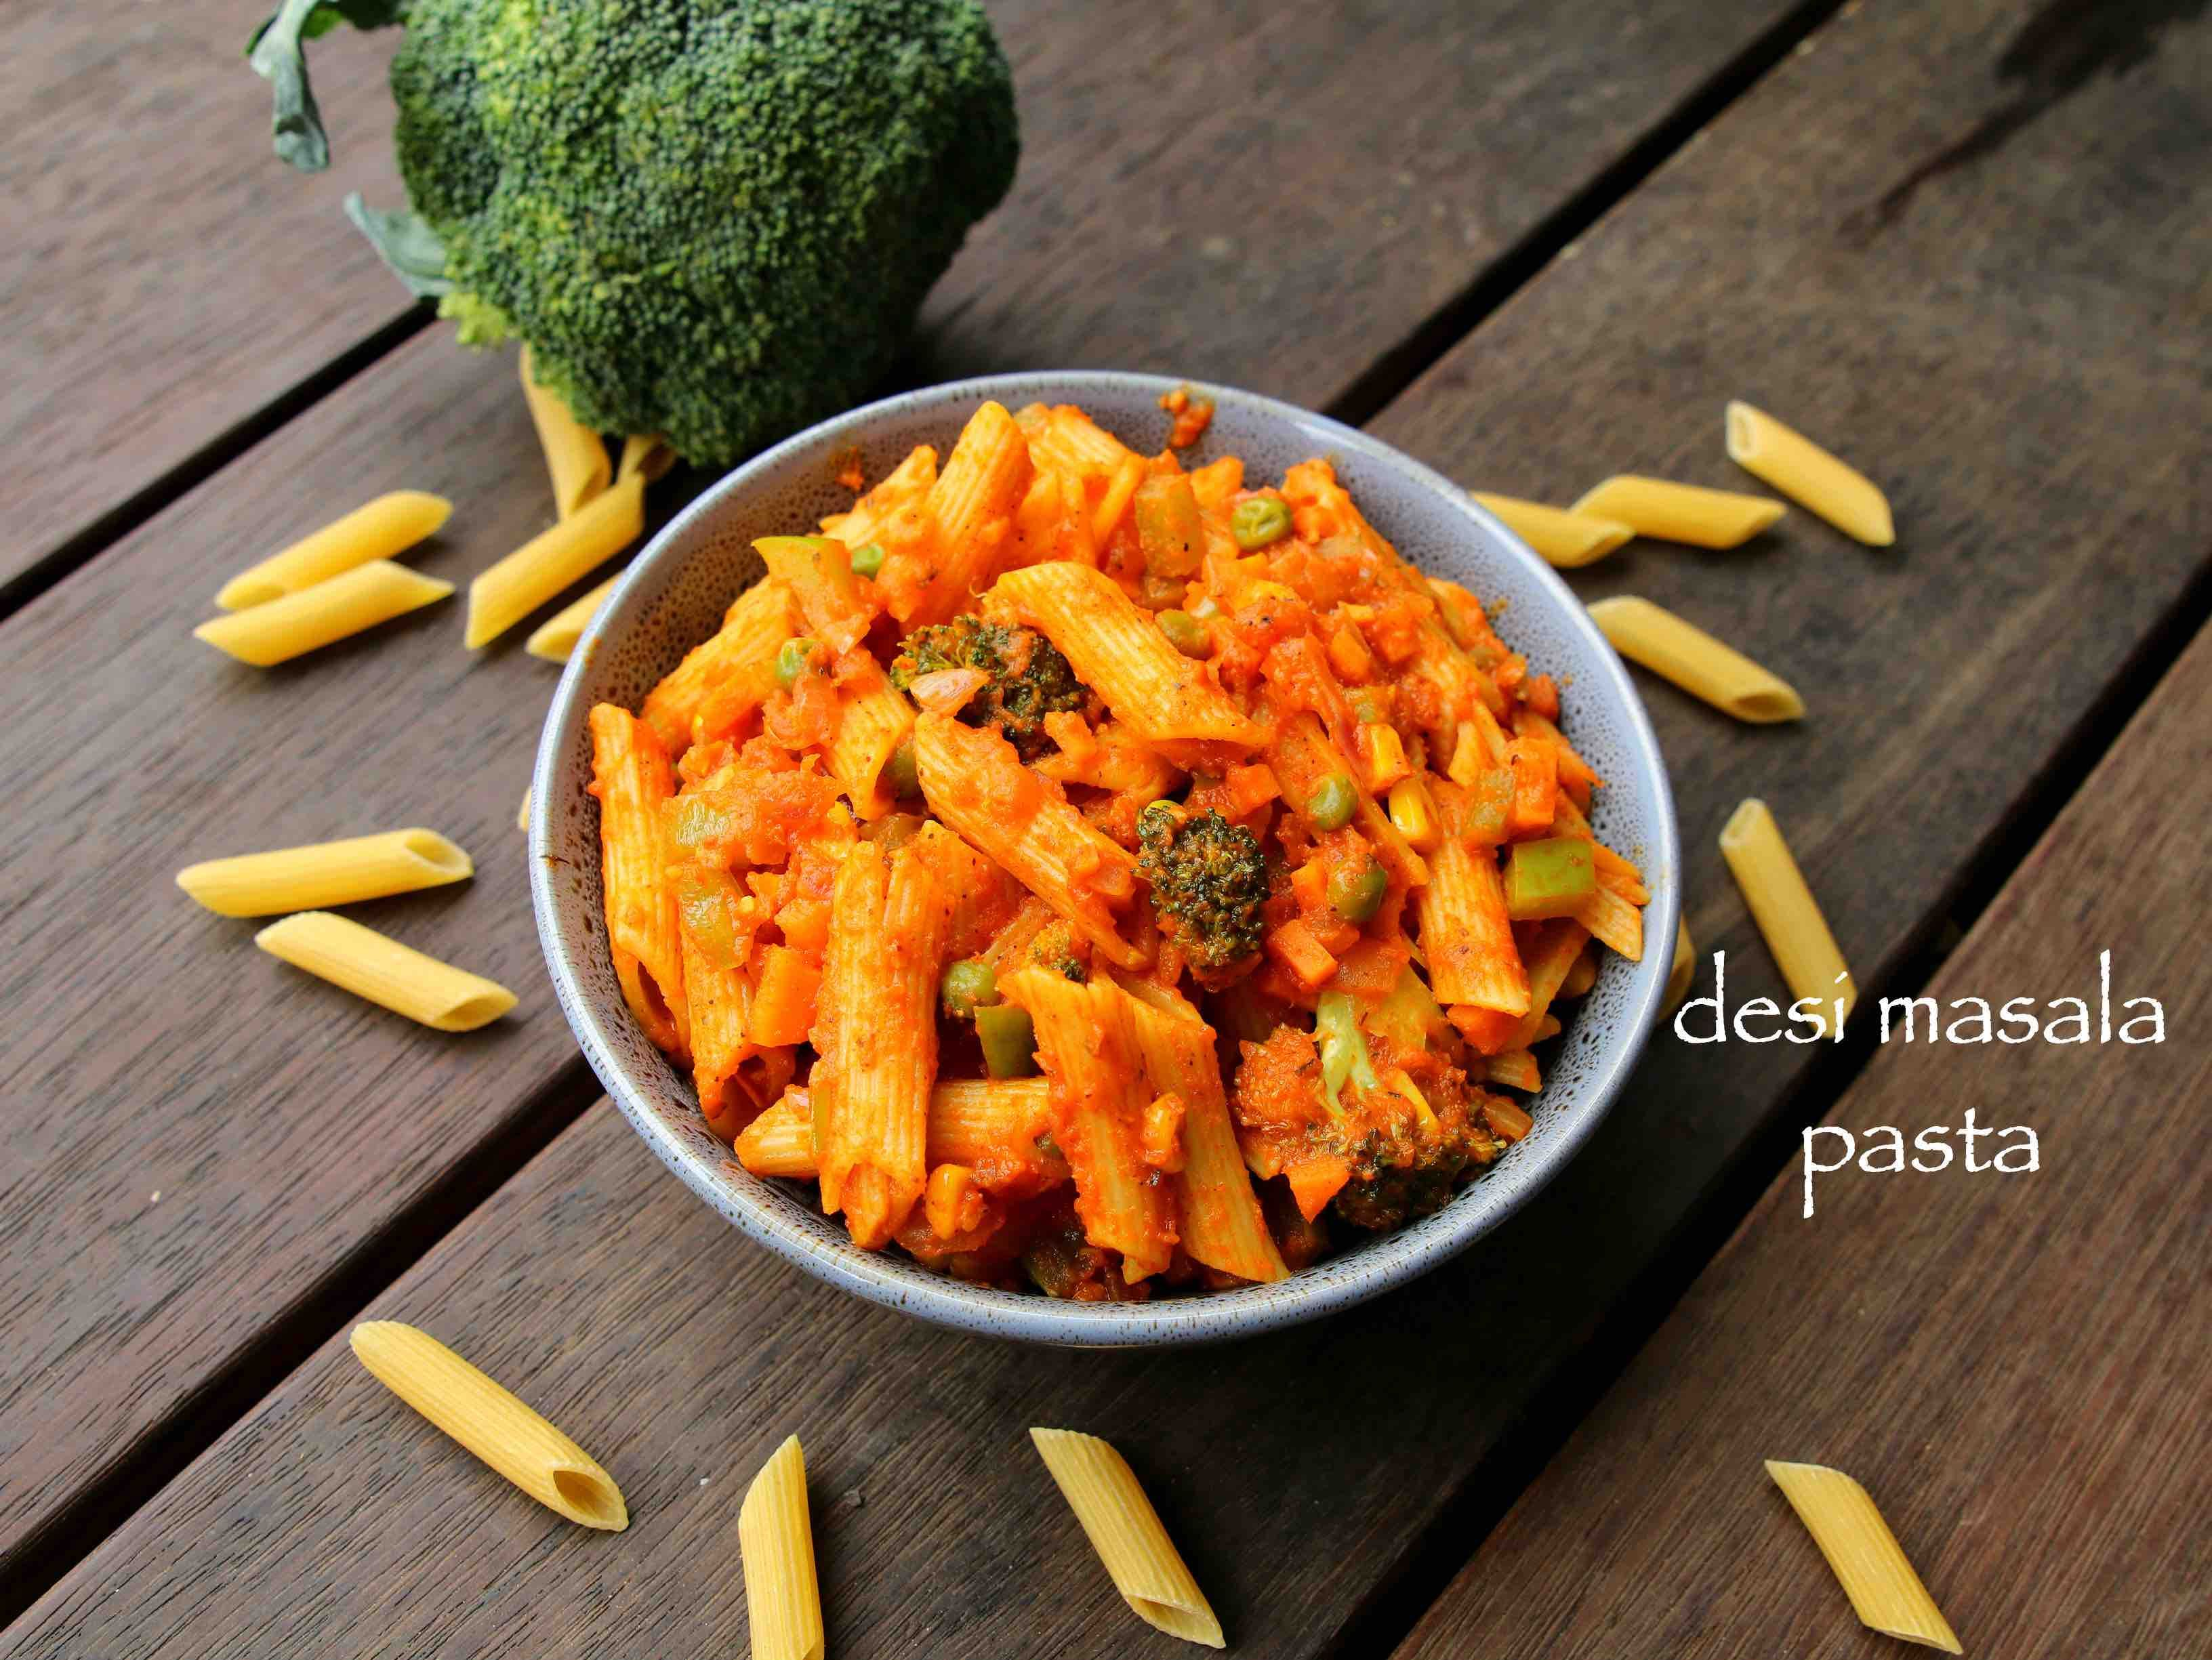 Masala pasta recipe indian style pasta indian pasta recipes with food masala pasta recipe indian forumfinder Image collections